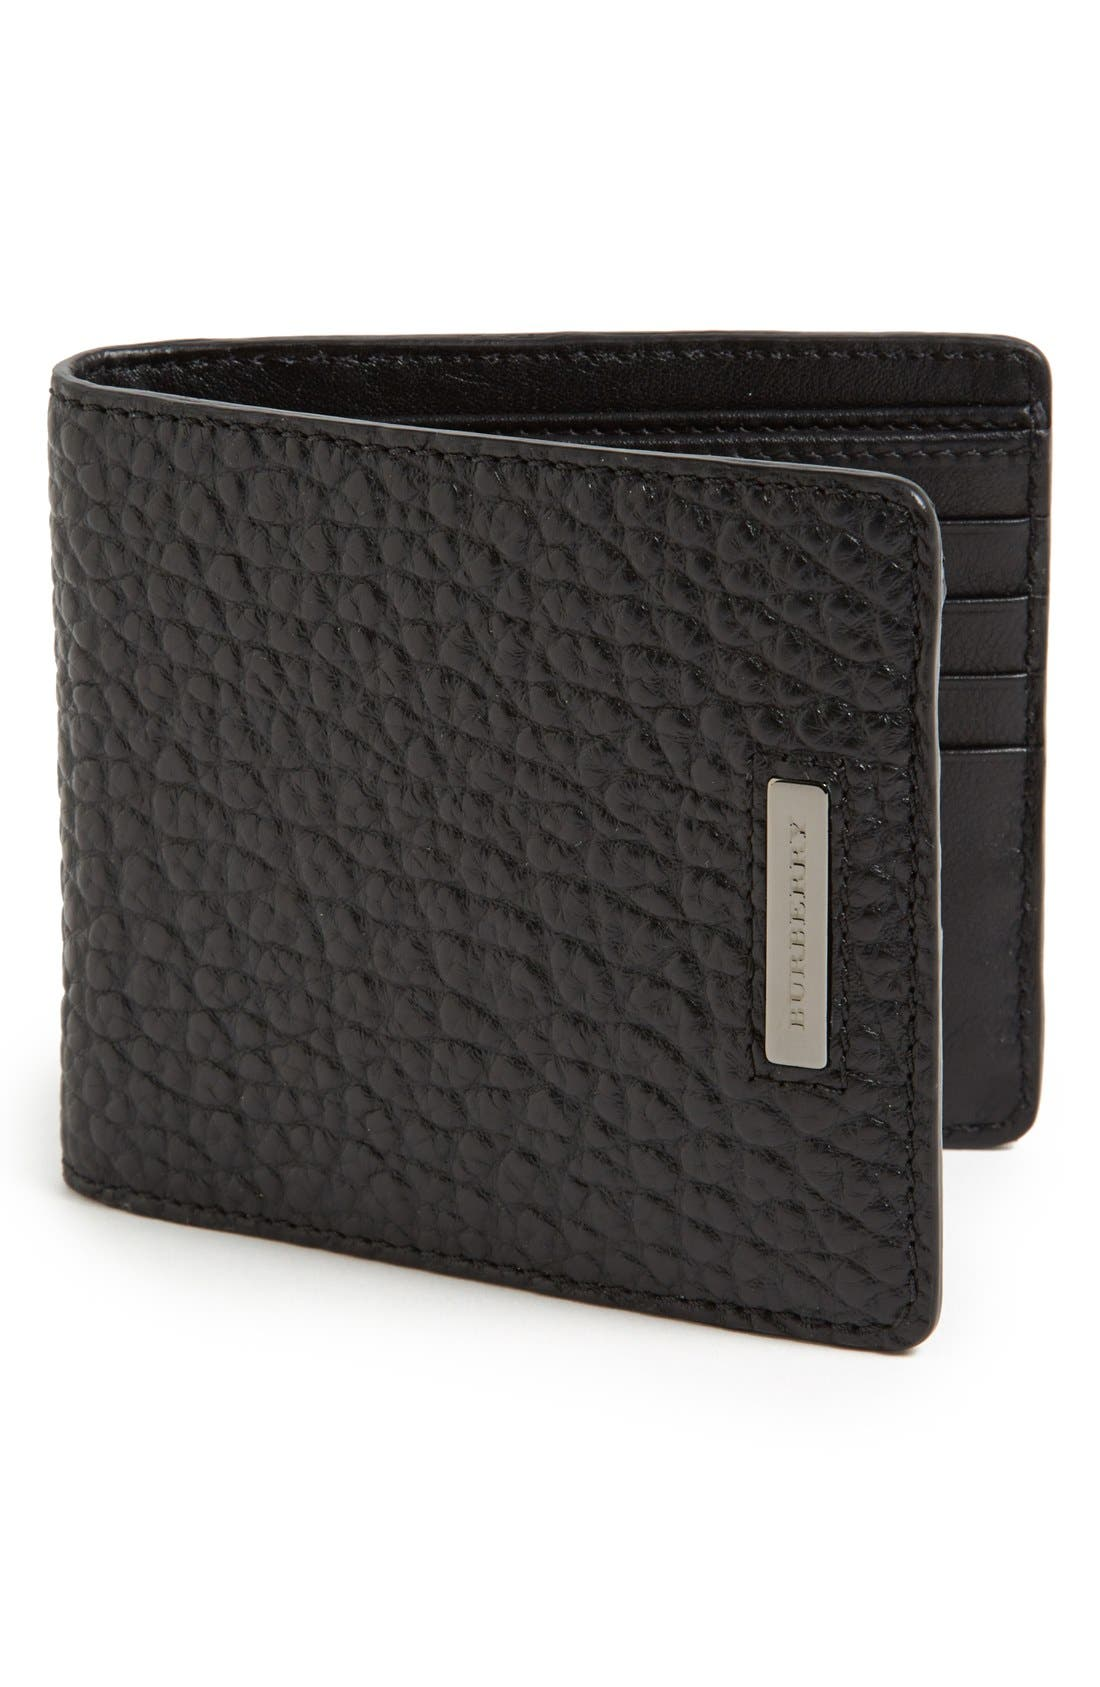 BURBERRY,                             Hipfold Wallet,                             Main thumbnail 1, color,                             001